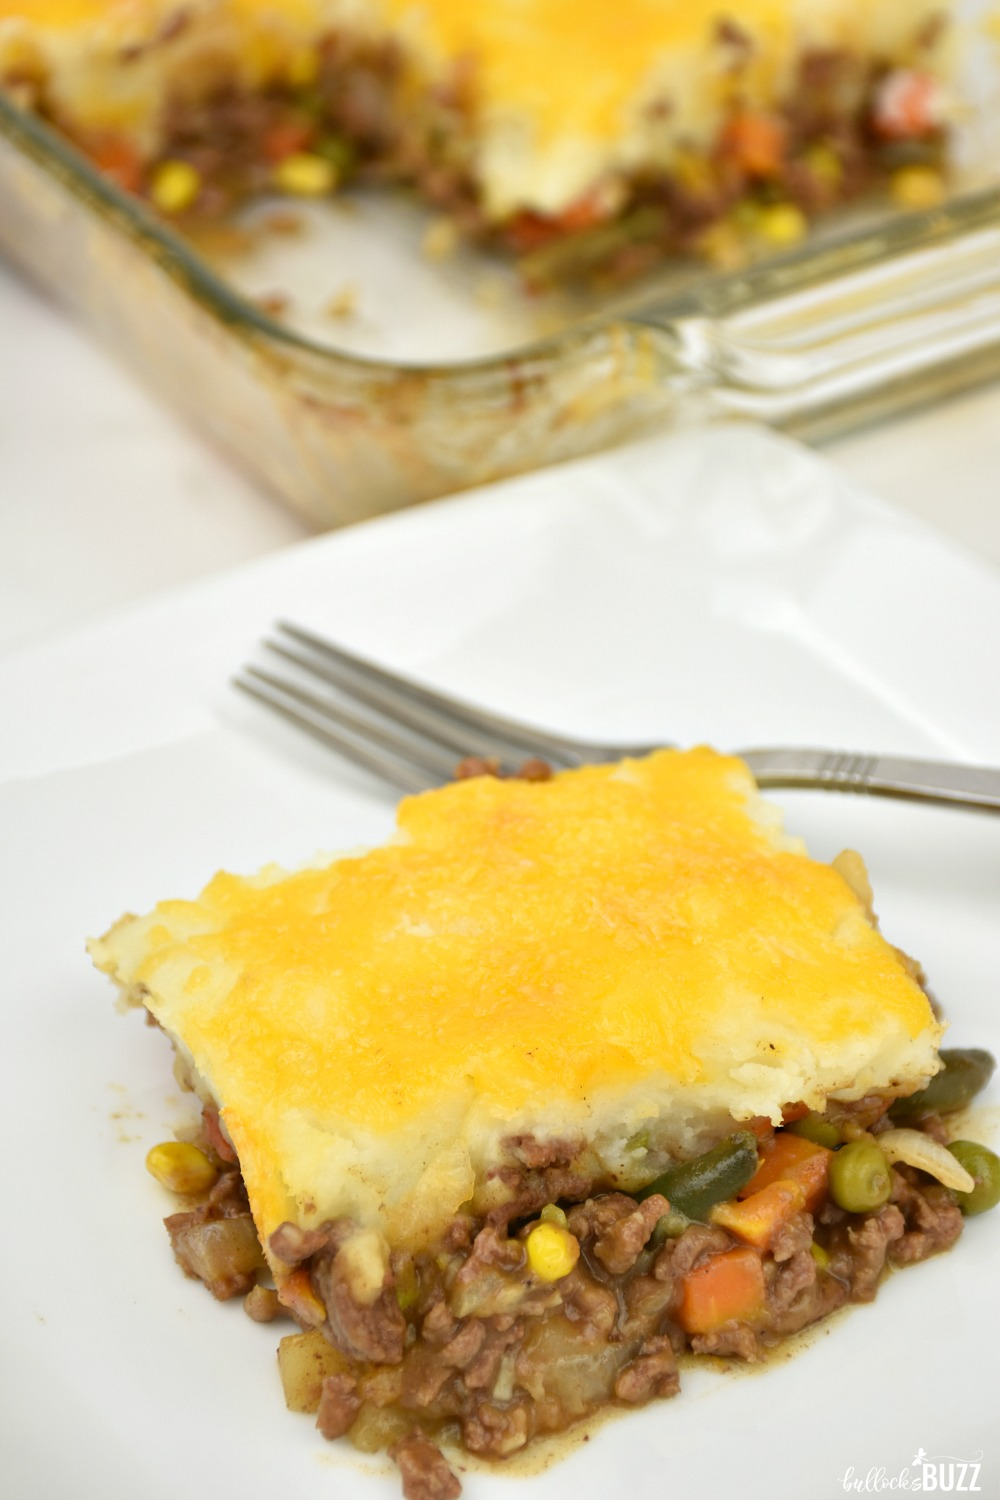 Made with seasoned ground beef, mixed vegetables, fluffy mashed potatoes and cheddar cheese, this classic Shepherd's Pie recipe is quick, easy, and absolutely delicious!